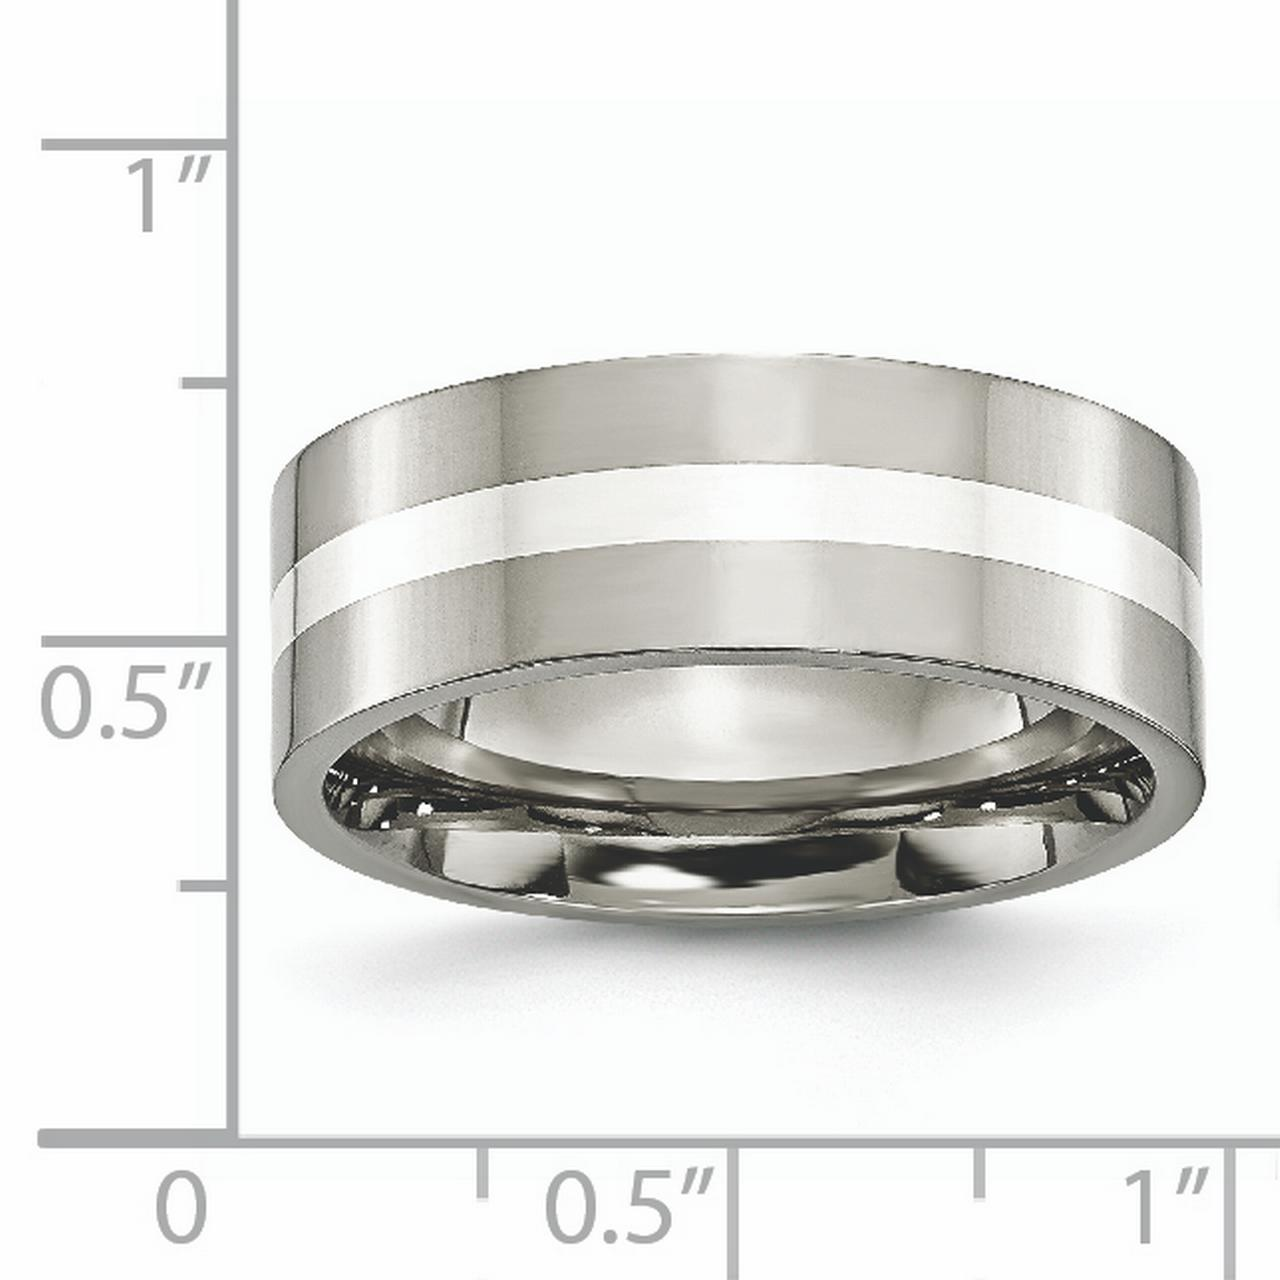 Titanium 925 Sterling Silver Inlay Flat 8mm Wedding Ring Band Size 7.00 Precious Metal Fine Jewelry Gifts For Women For Her - image 5 de 6